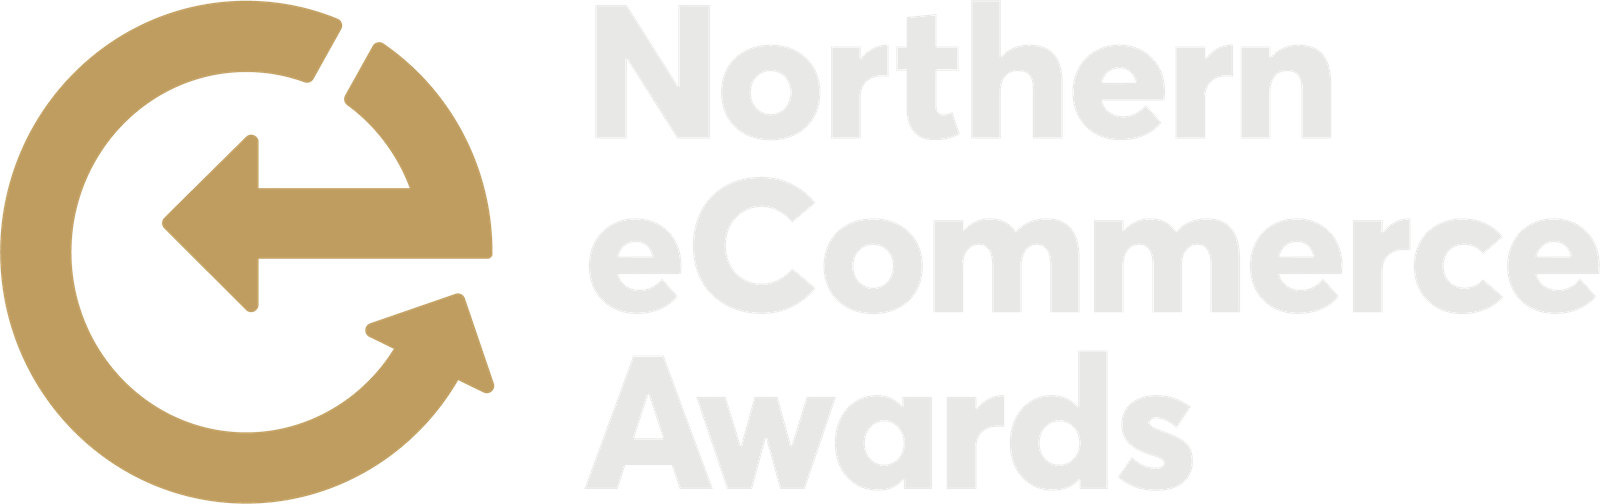 Northern eCommerce Awards logo